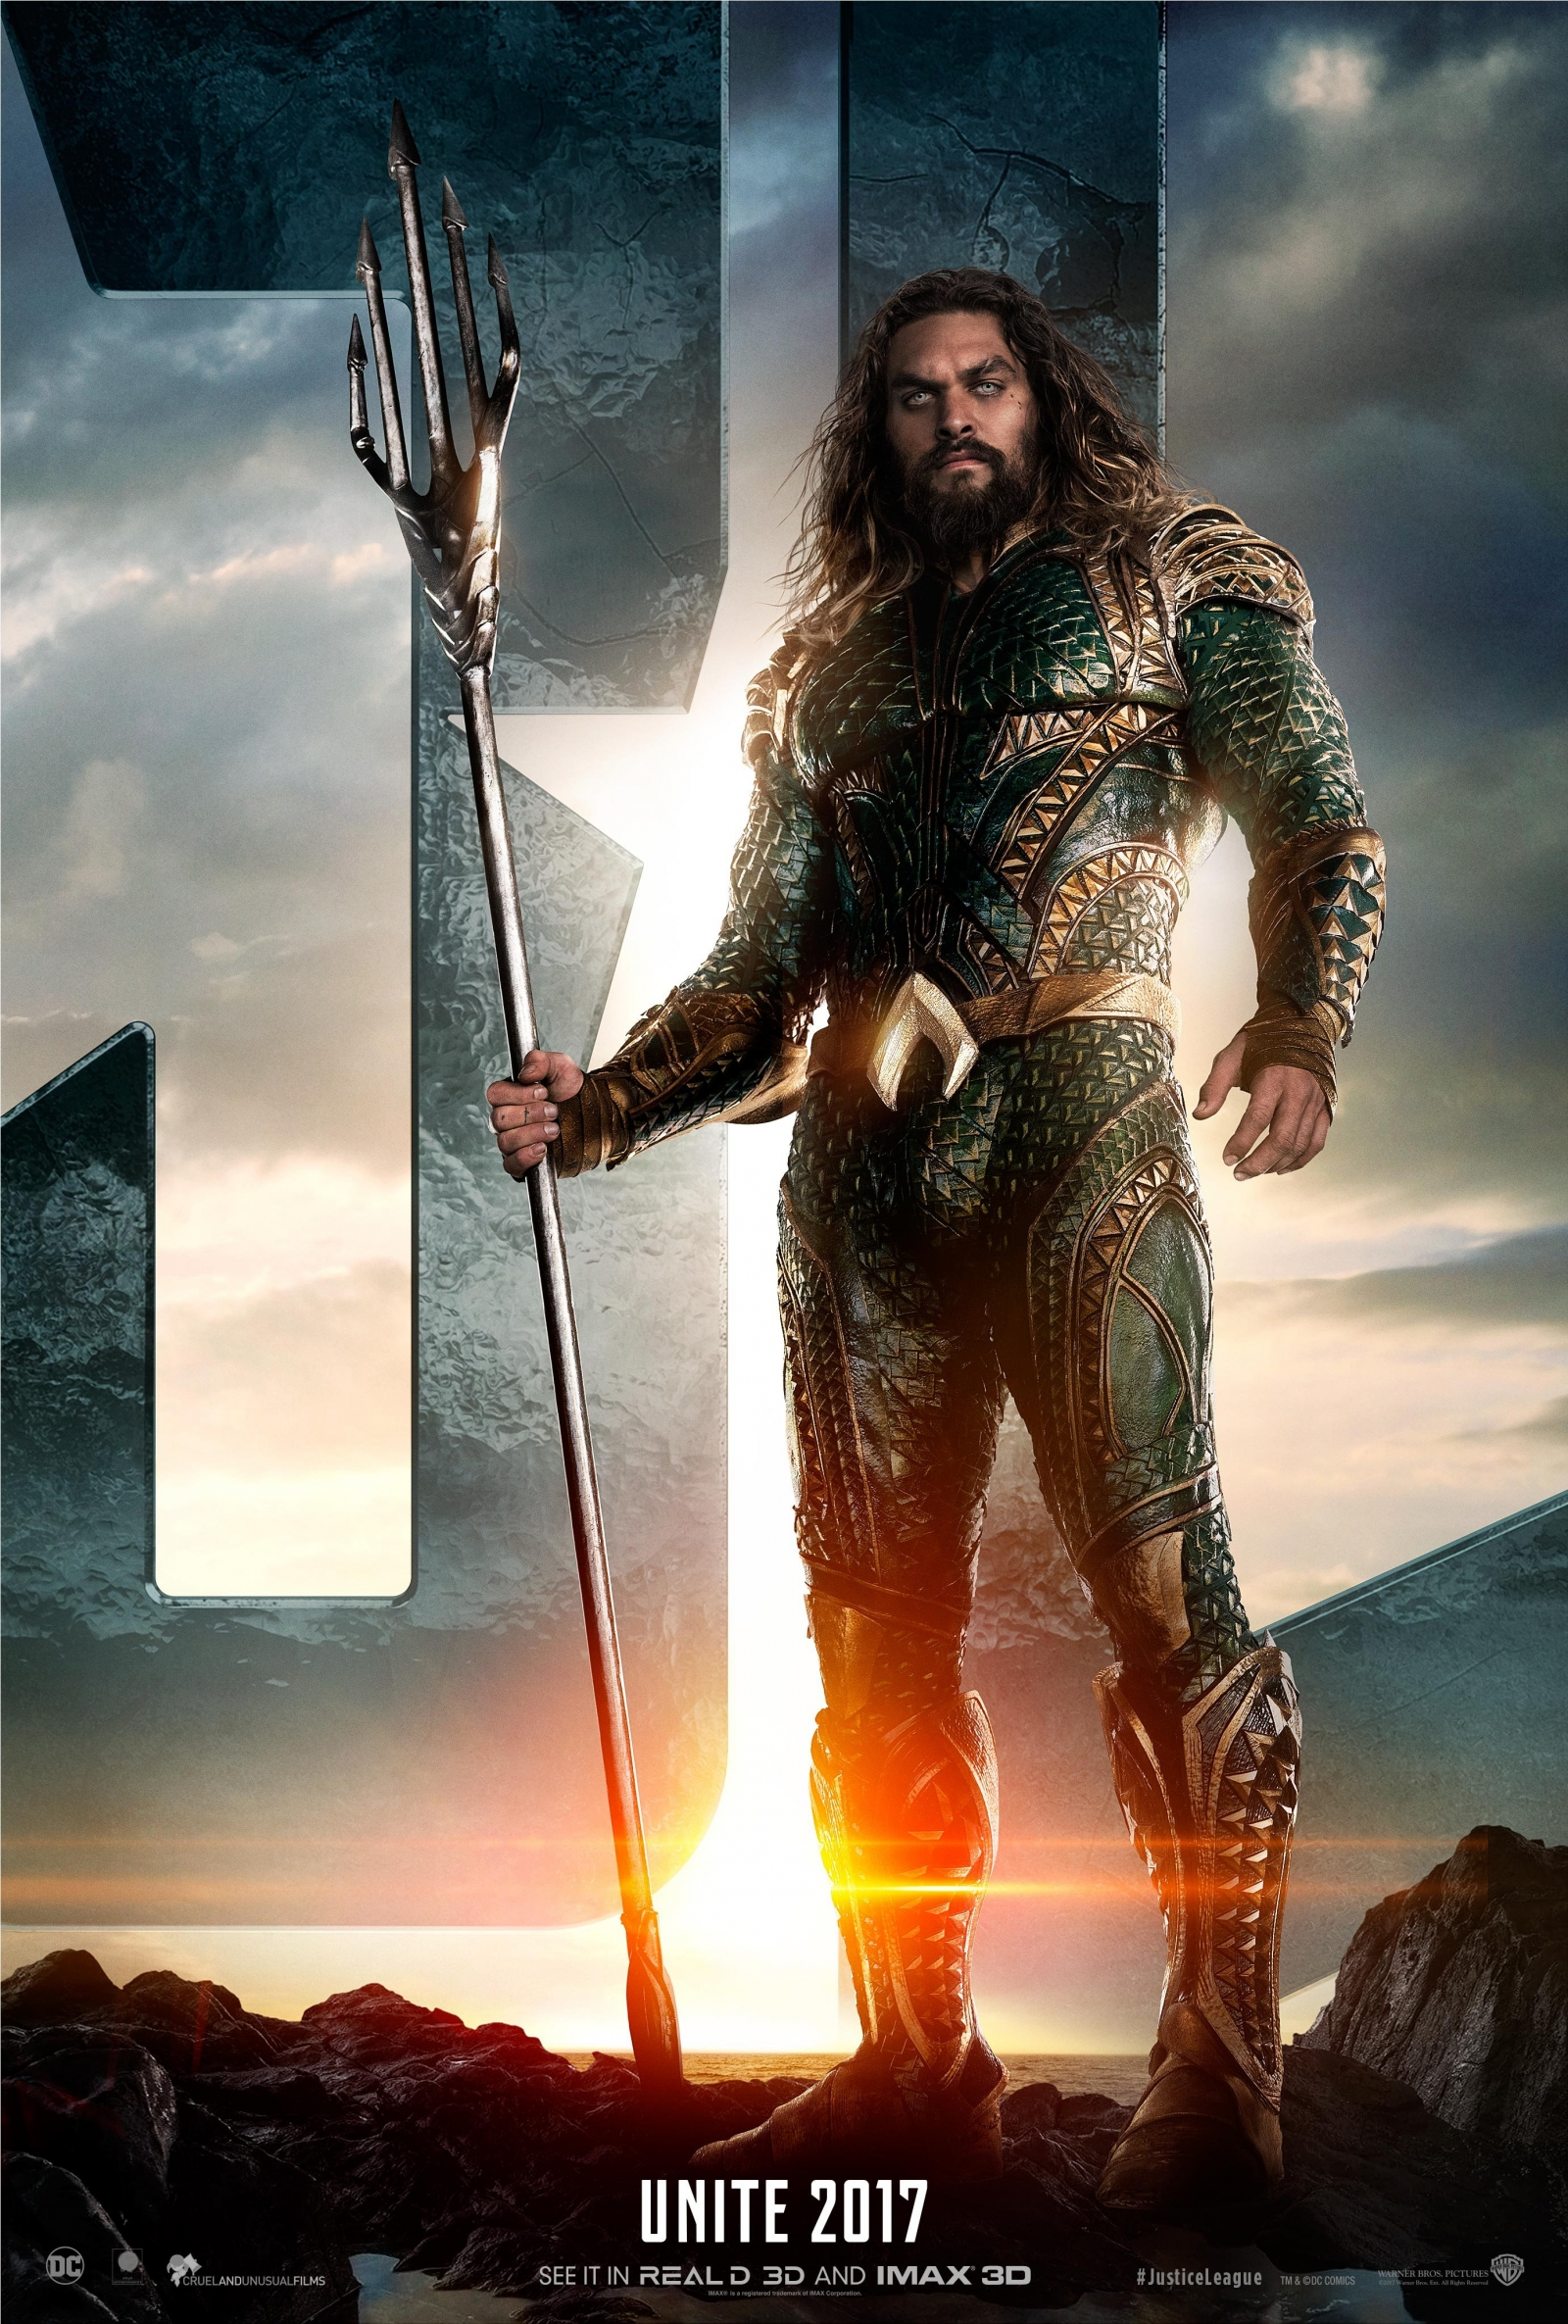 Jason Momoa takes Twitter by storm as fans drool over hot Aquaman in Justice League trailer